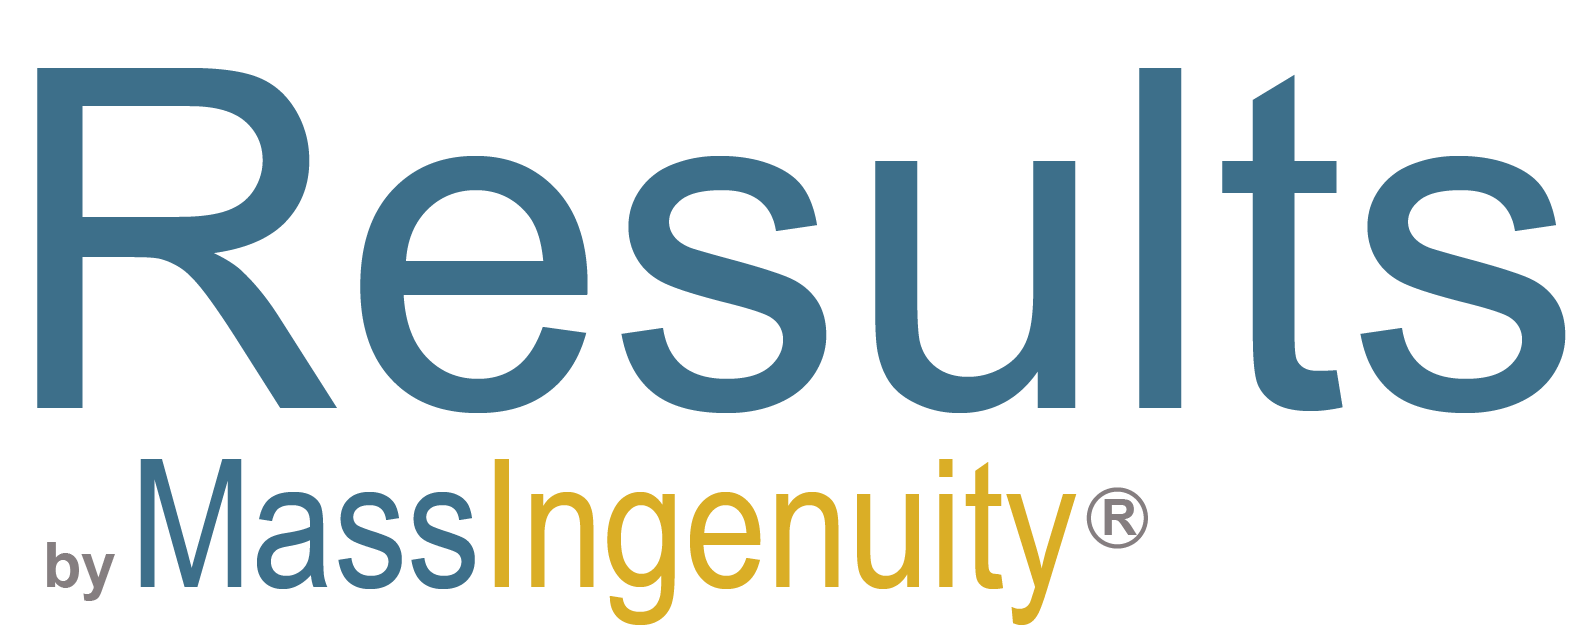 Mass Ingenuity Enterprise Performance Management